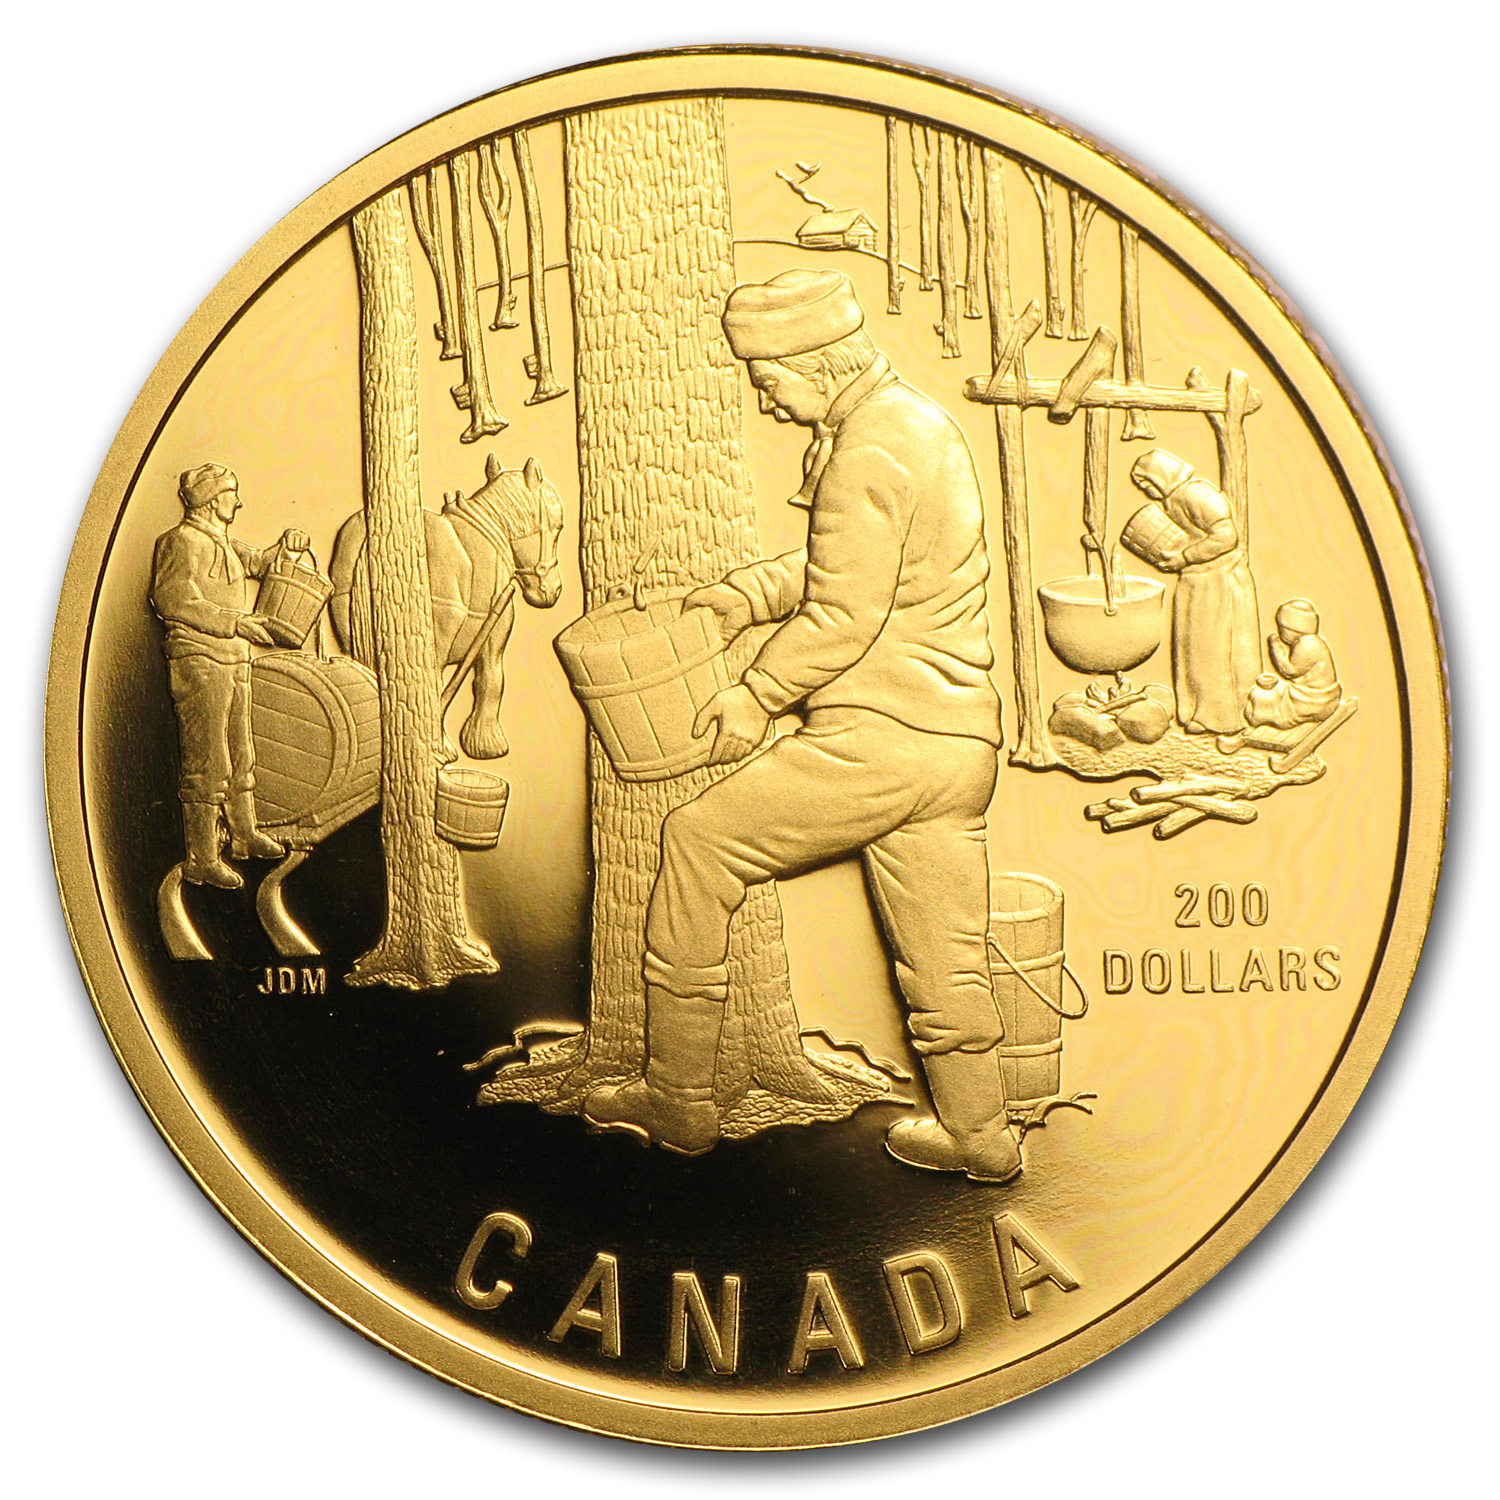 1995 Canada 1/2 oz Proof Gold $200 Maple Syrup Sugaring